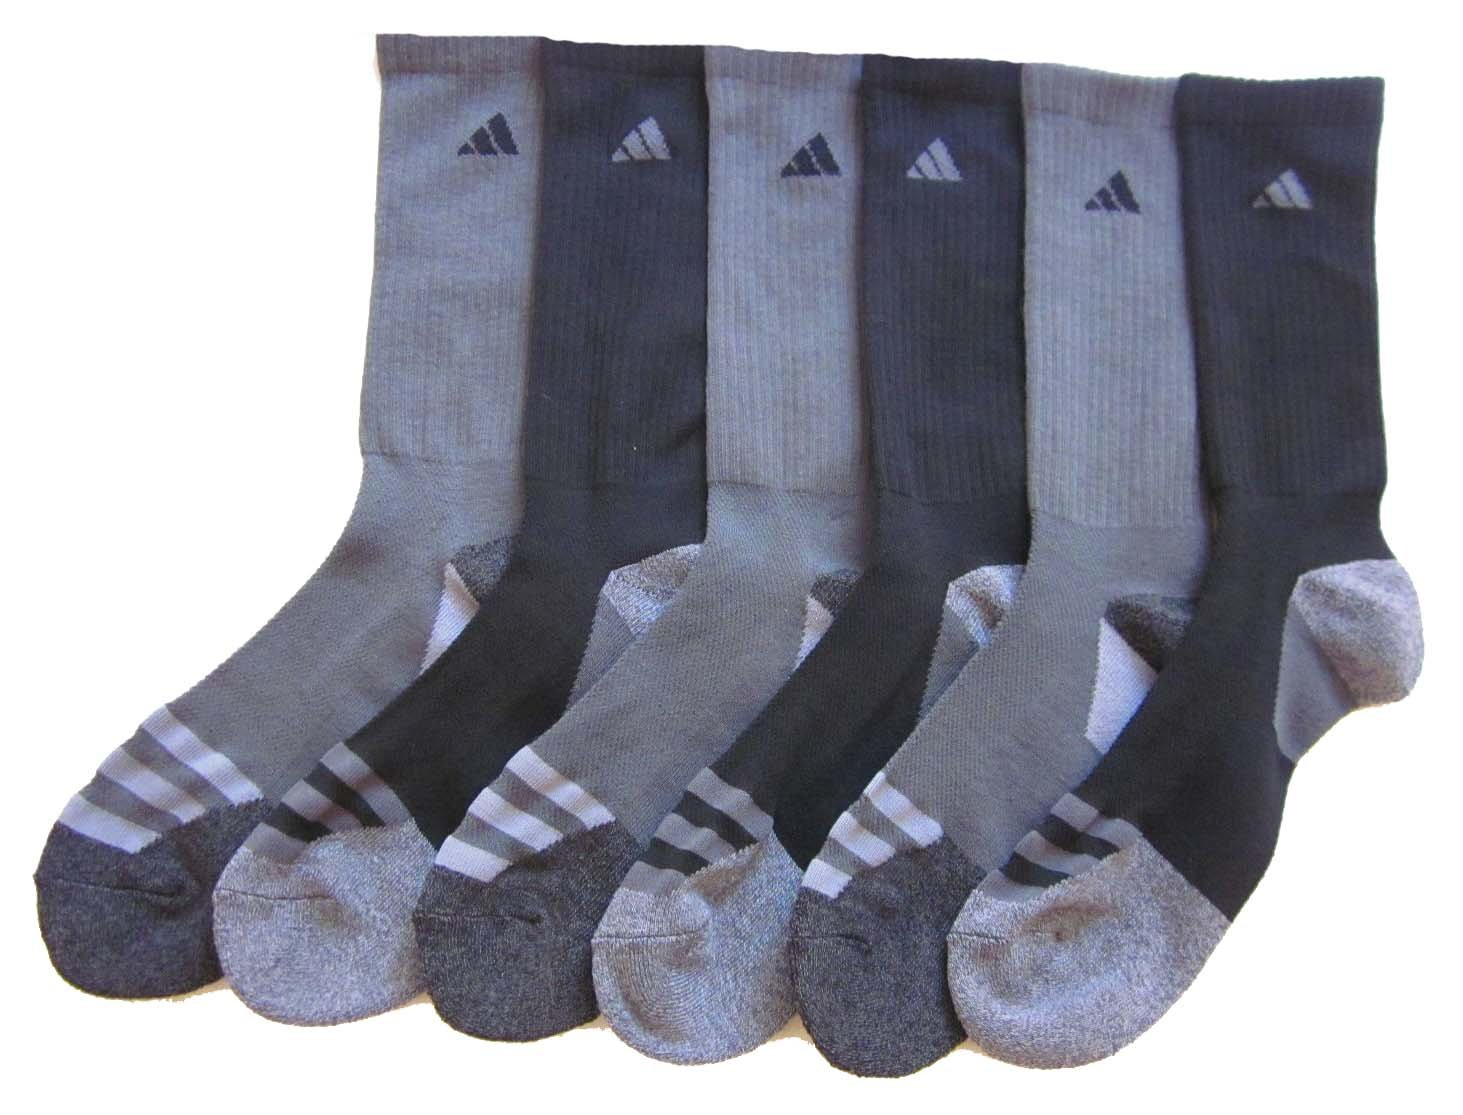 Mens Adidas Athletic Socks 6 Pack (Black/Carbon Grey) by adidas